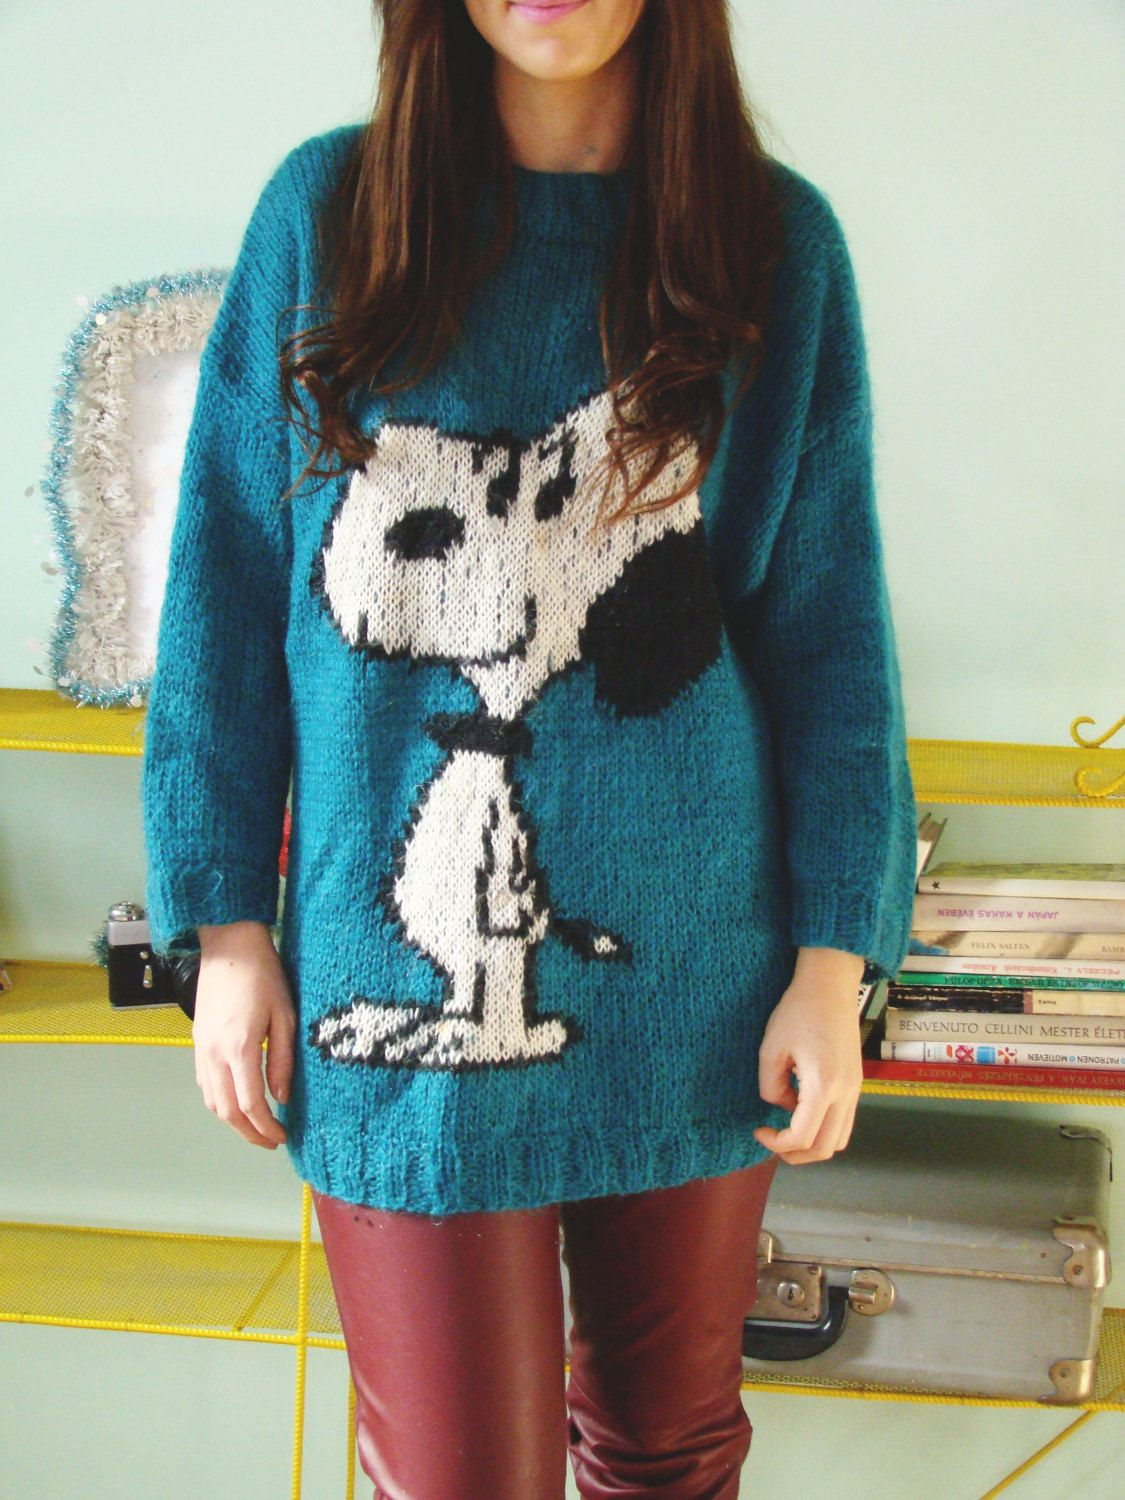 667a557cdd5 Vintage 80 s Snoopy Jumper Turqoise Knitted Sweater.  22.00